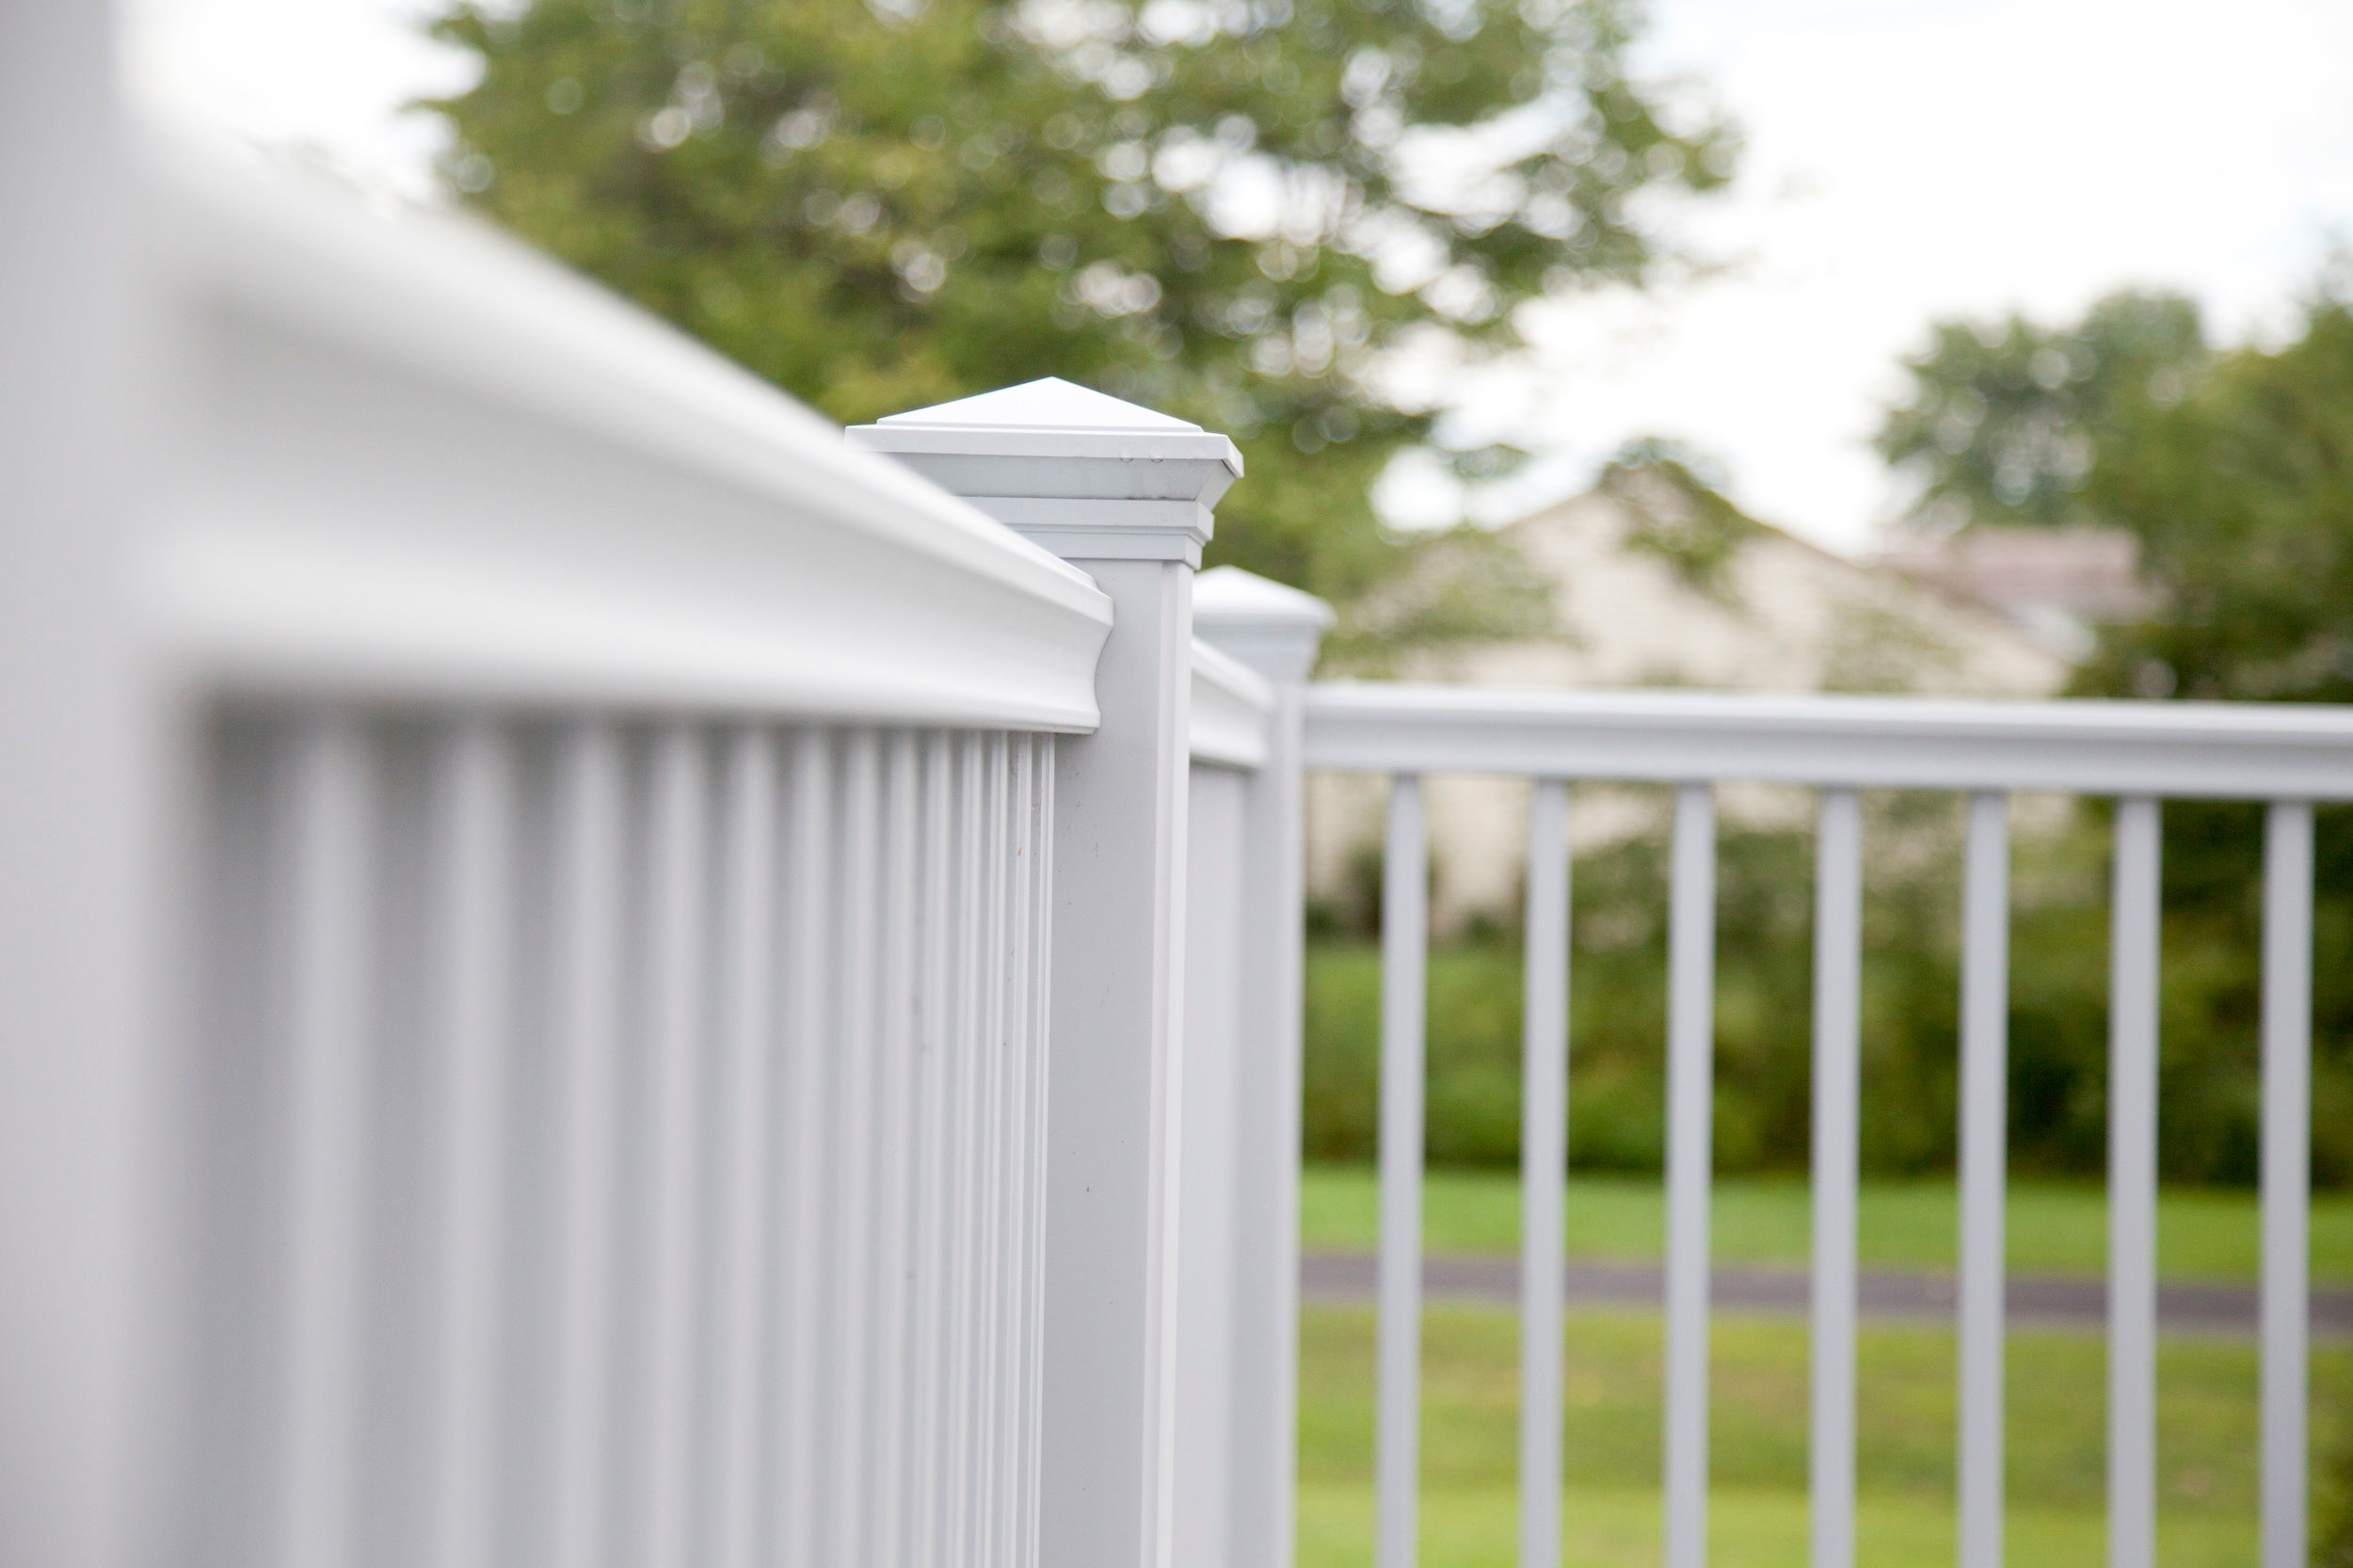 PVC, Vinyl and Resin Railing - Rockport, Merrimack, Nantucket, Titan (Vinyl-Clad Aluminum), Original Rail (Aluminum Reinforced Vinyl), Transform® (Resin based, state-of-the-art Resalite® core